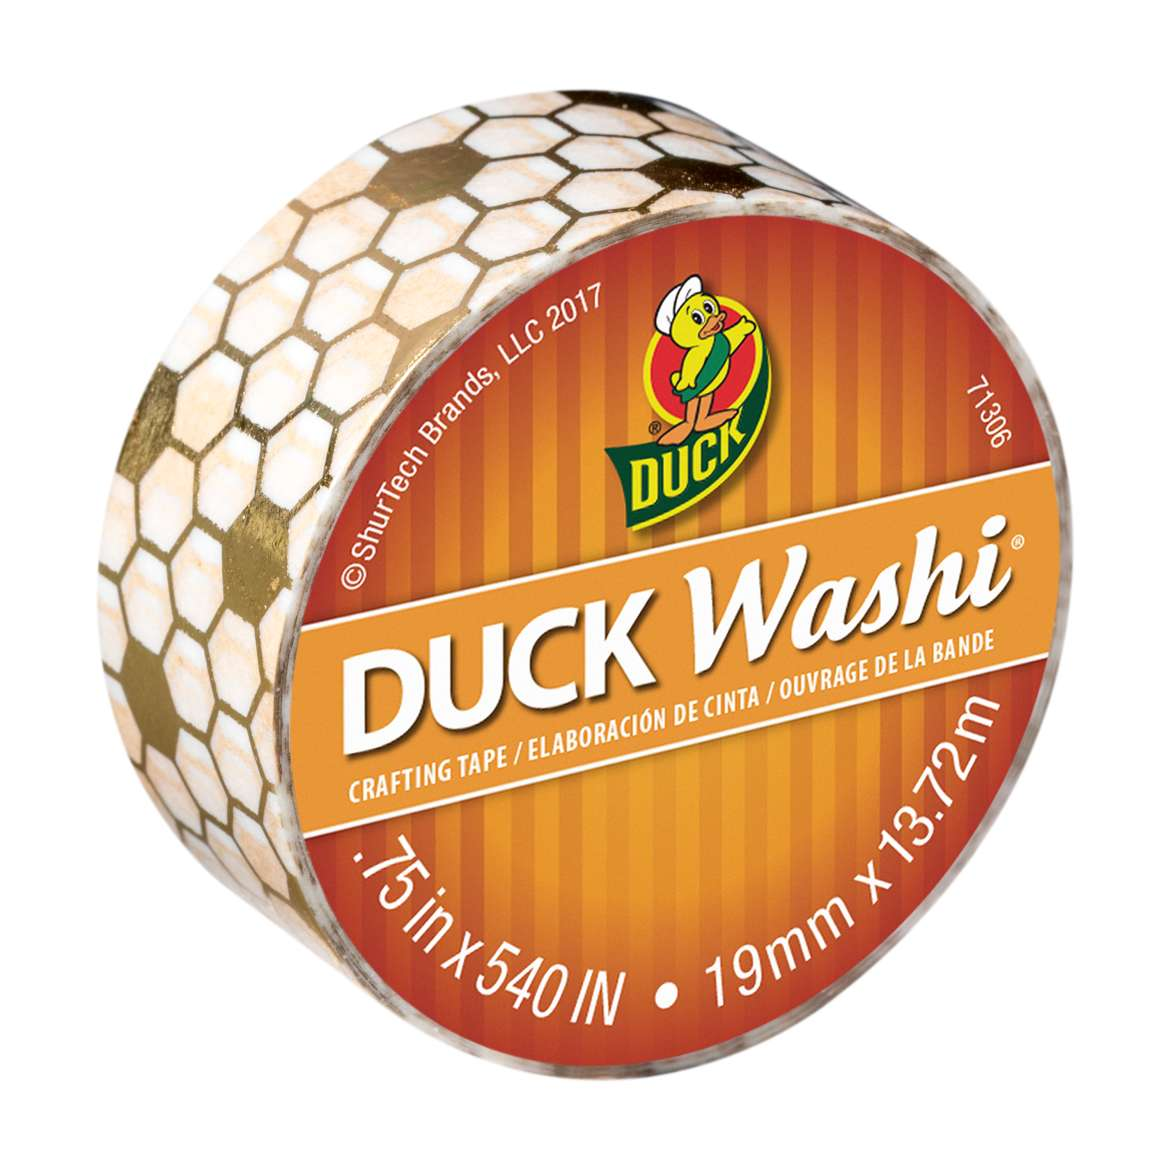 Duck Washi® Crafting Tape - Metallic Honeycomb, 0.75 in. X 15 yd. Image